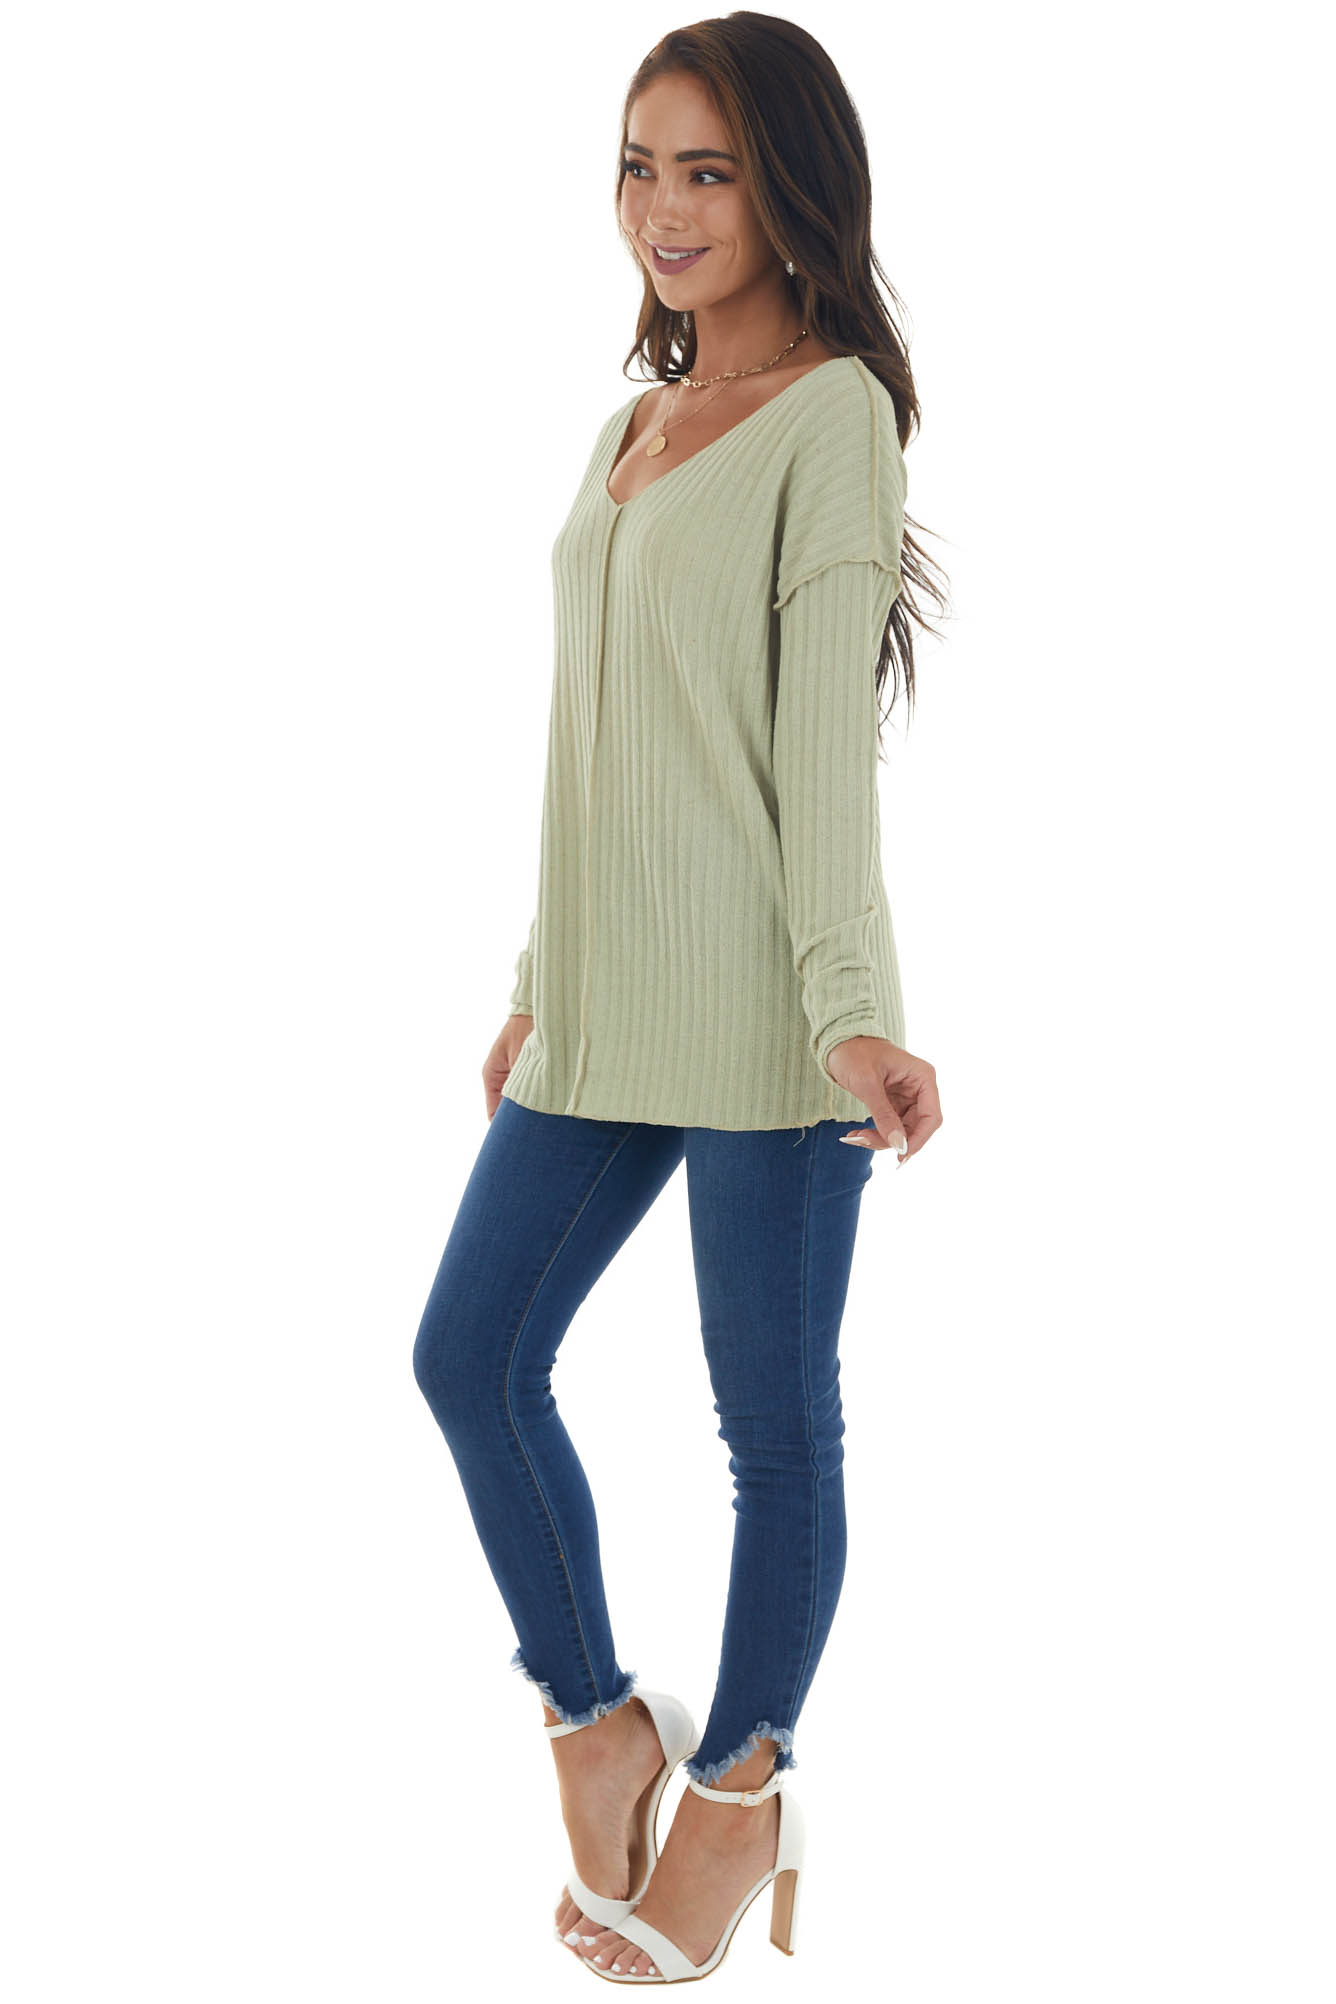 Pistachio Specked Ribbed Knit Exposed Seam Top